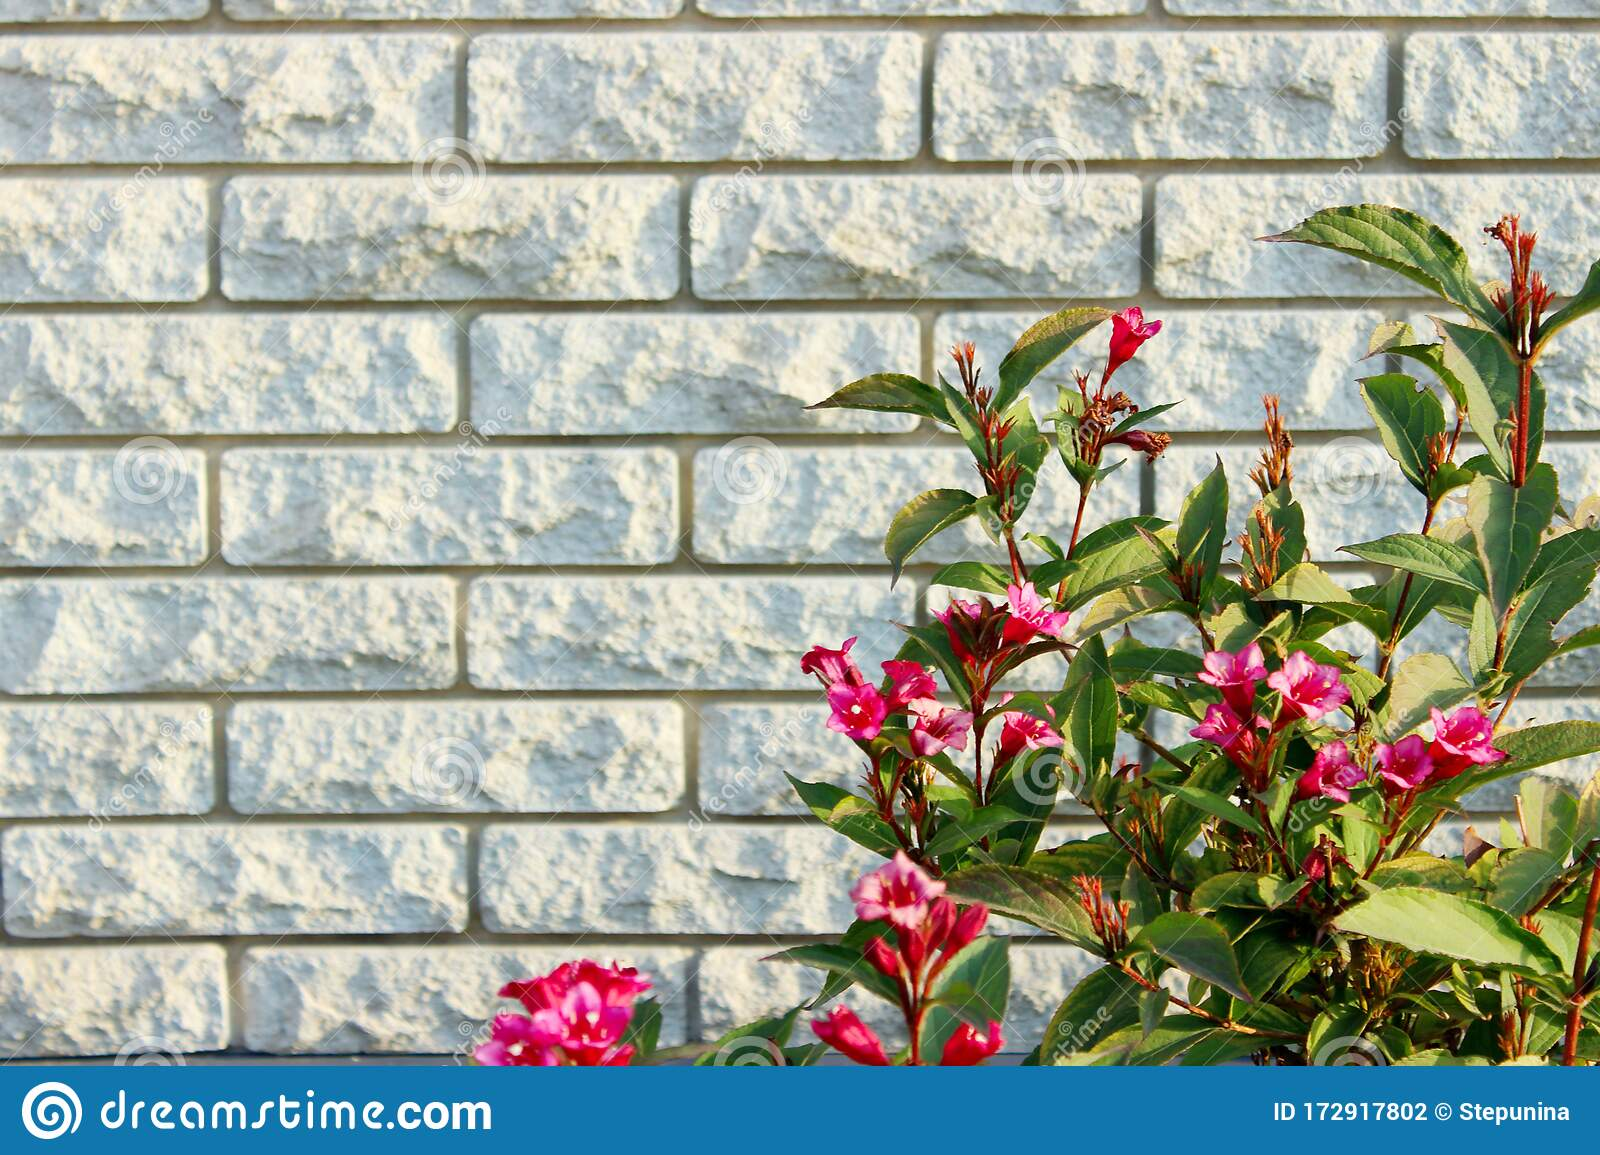 White Brick Fence And Bright Red Flowers Brick Wall Texture Background Stock Photo Image Of Exterior Bush 172917802